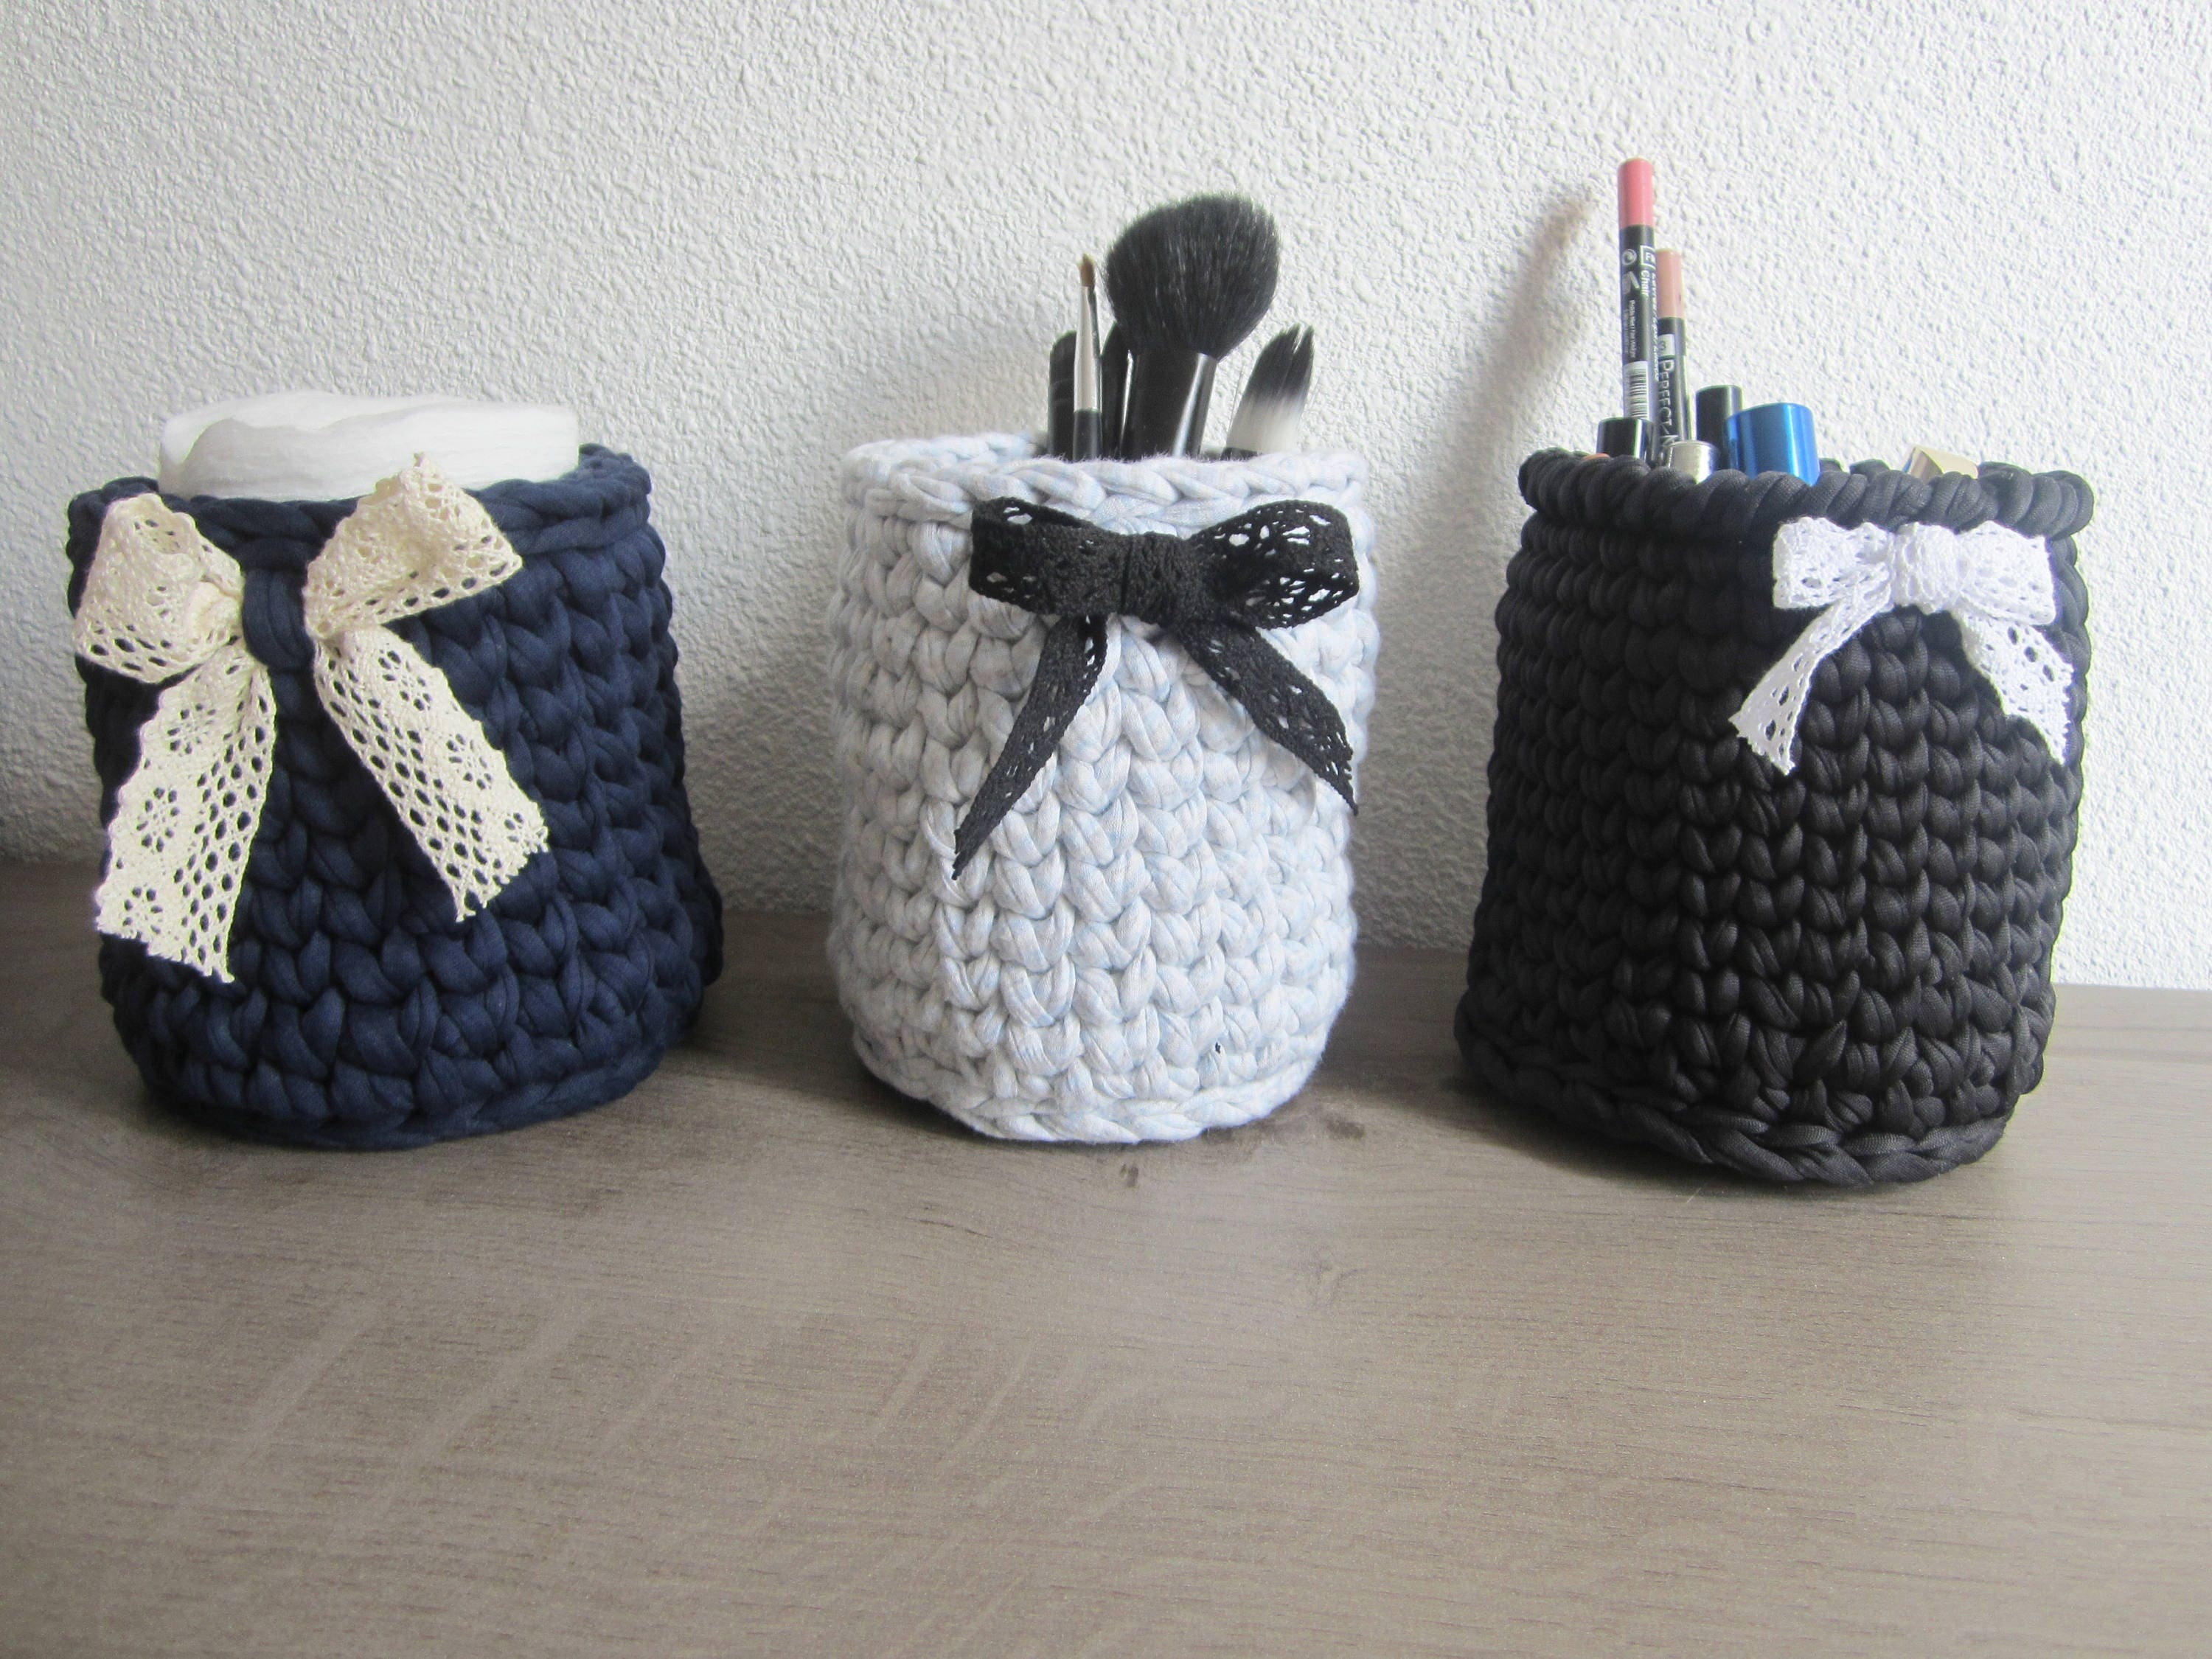 pot pinceaux maquillage rangements salle bain rangement etsy. Black Bedroom Furniture Sets. Home Design Ideas